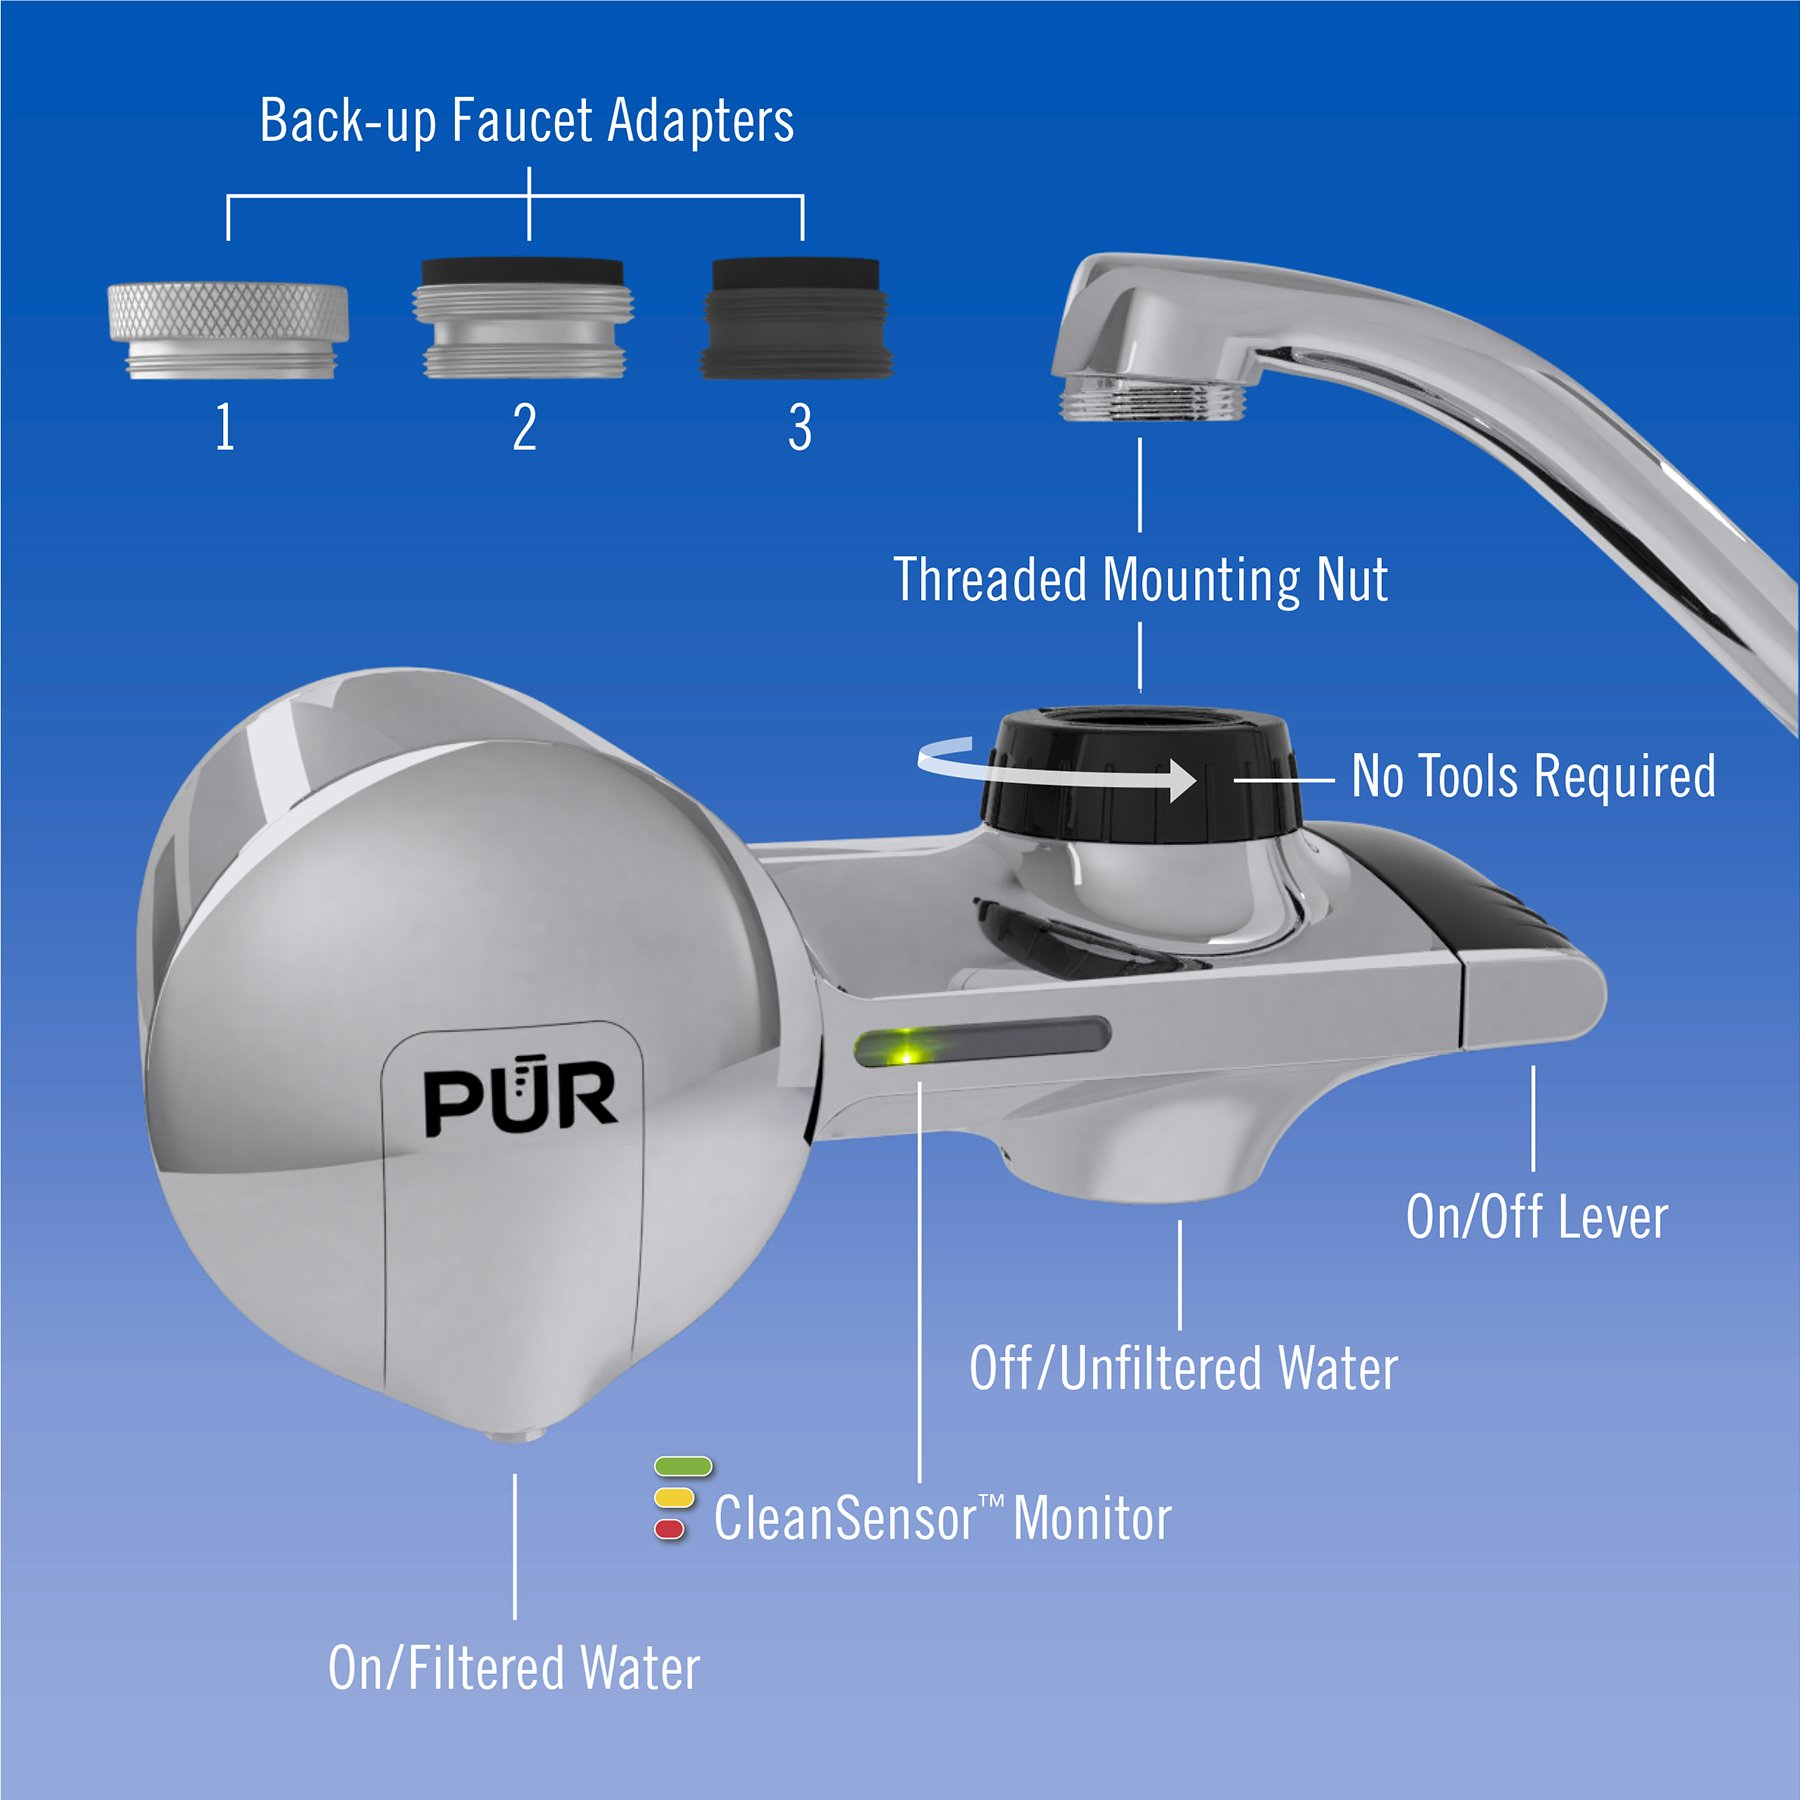 PUR Advanced Faucet Water Filter System with MineralClear Filter, Chrome, Horizontal, Indicator for Filter Status, Carbon Filter Lasts 3 Months (100 gal), Fits Standard Faucets, Easy Install, PFM400H by PUR (Image #5)